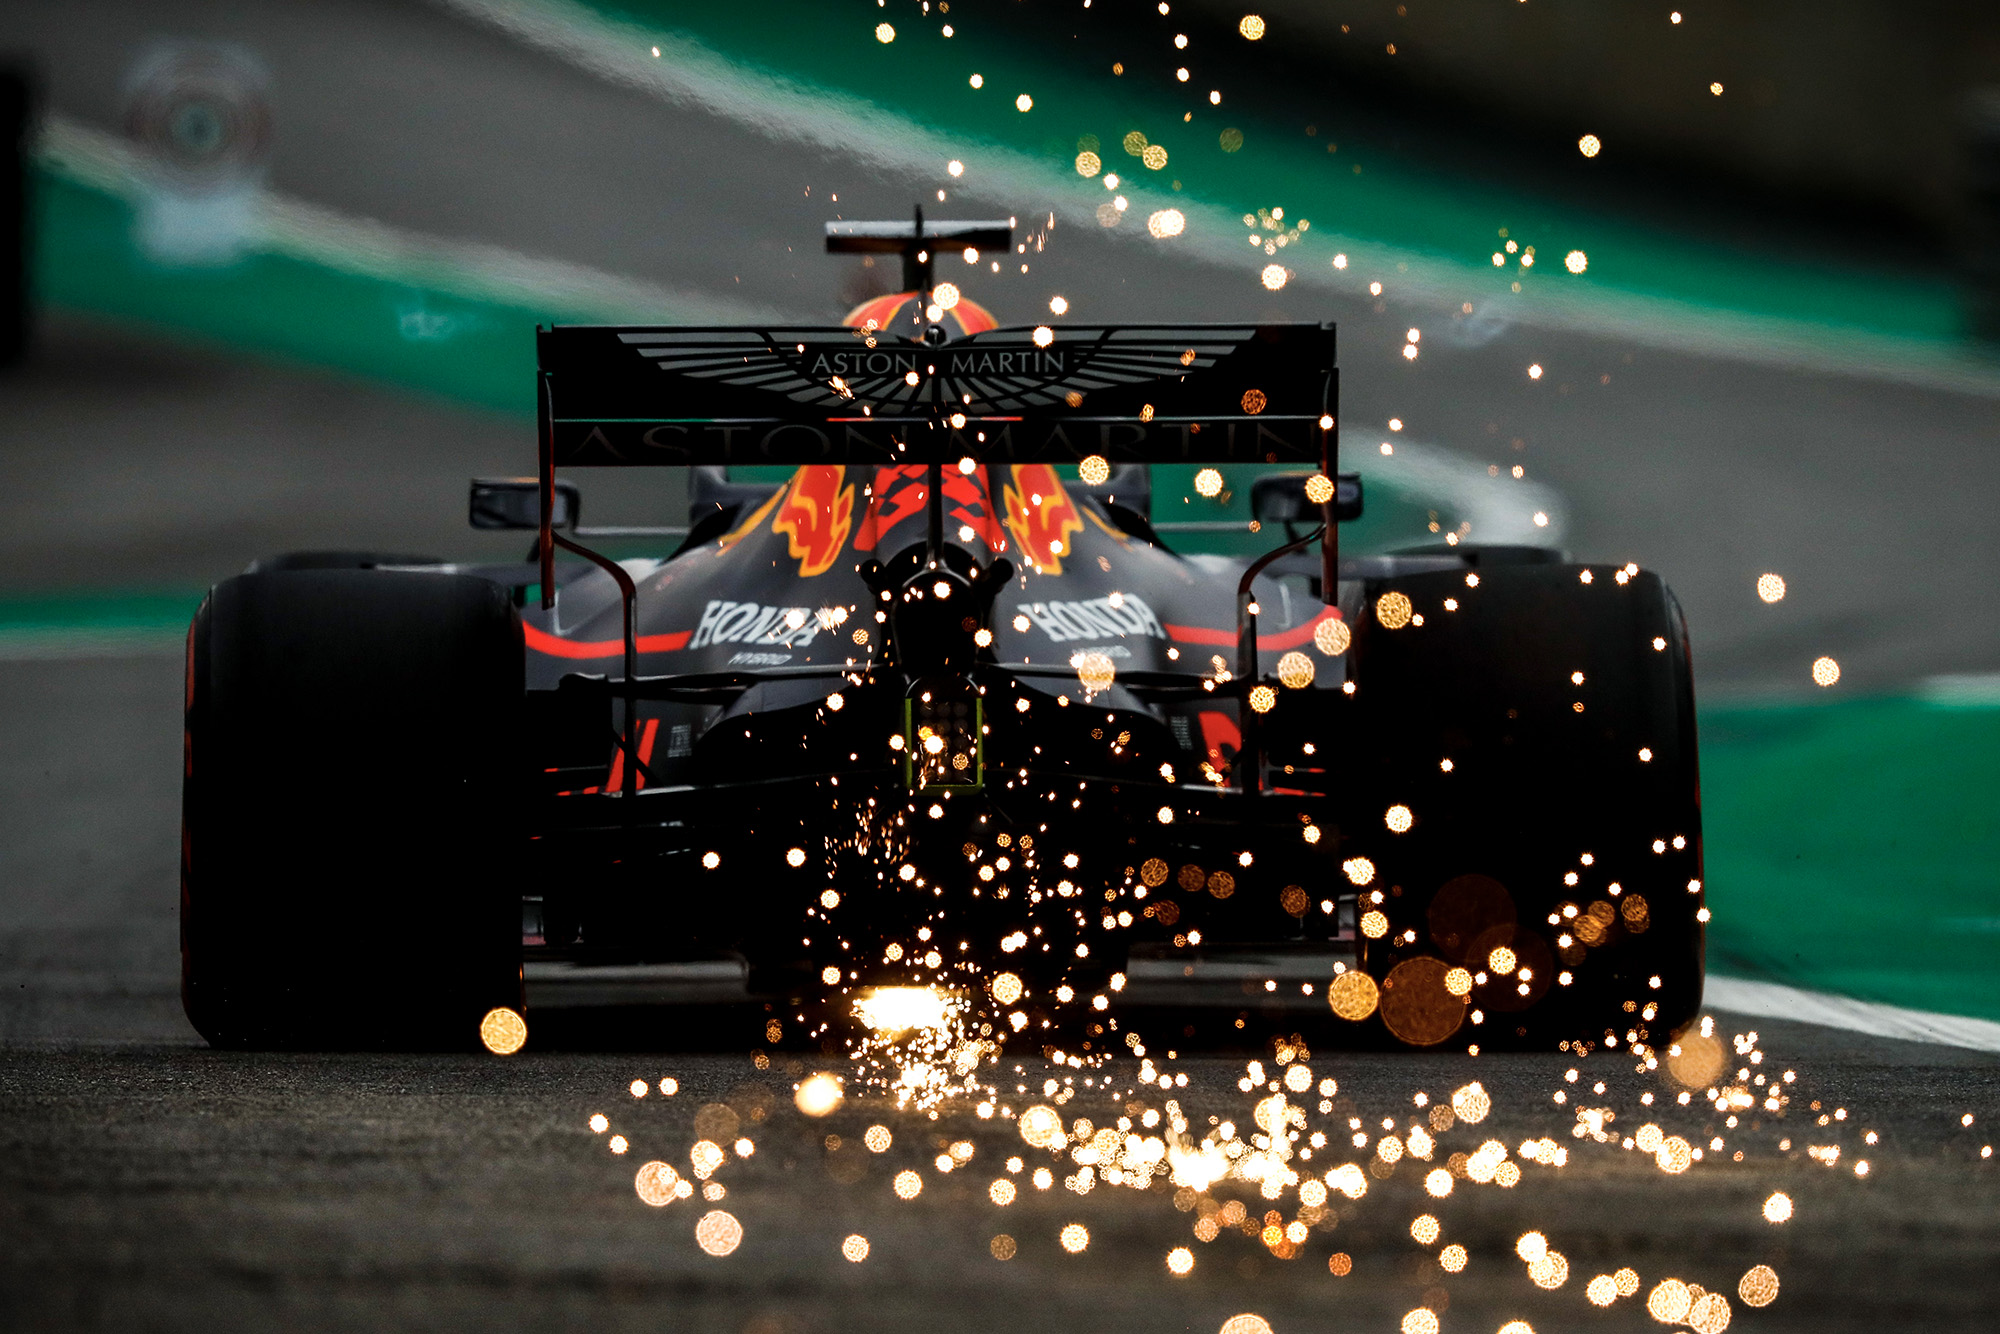 Sparks fly from the back of Max verstappen's Red Bull during qualifying for the 2019 Brazilian Grand Prix